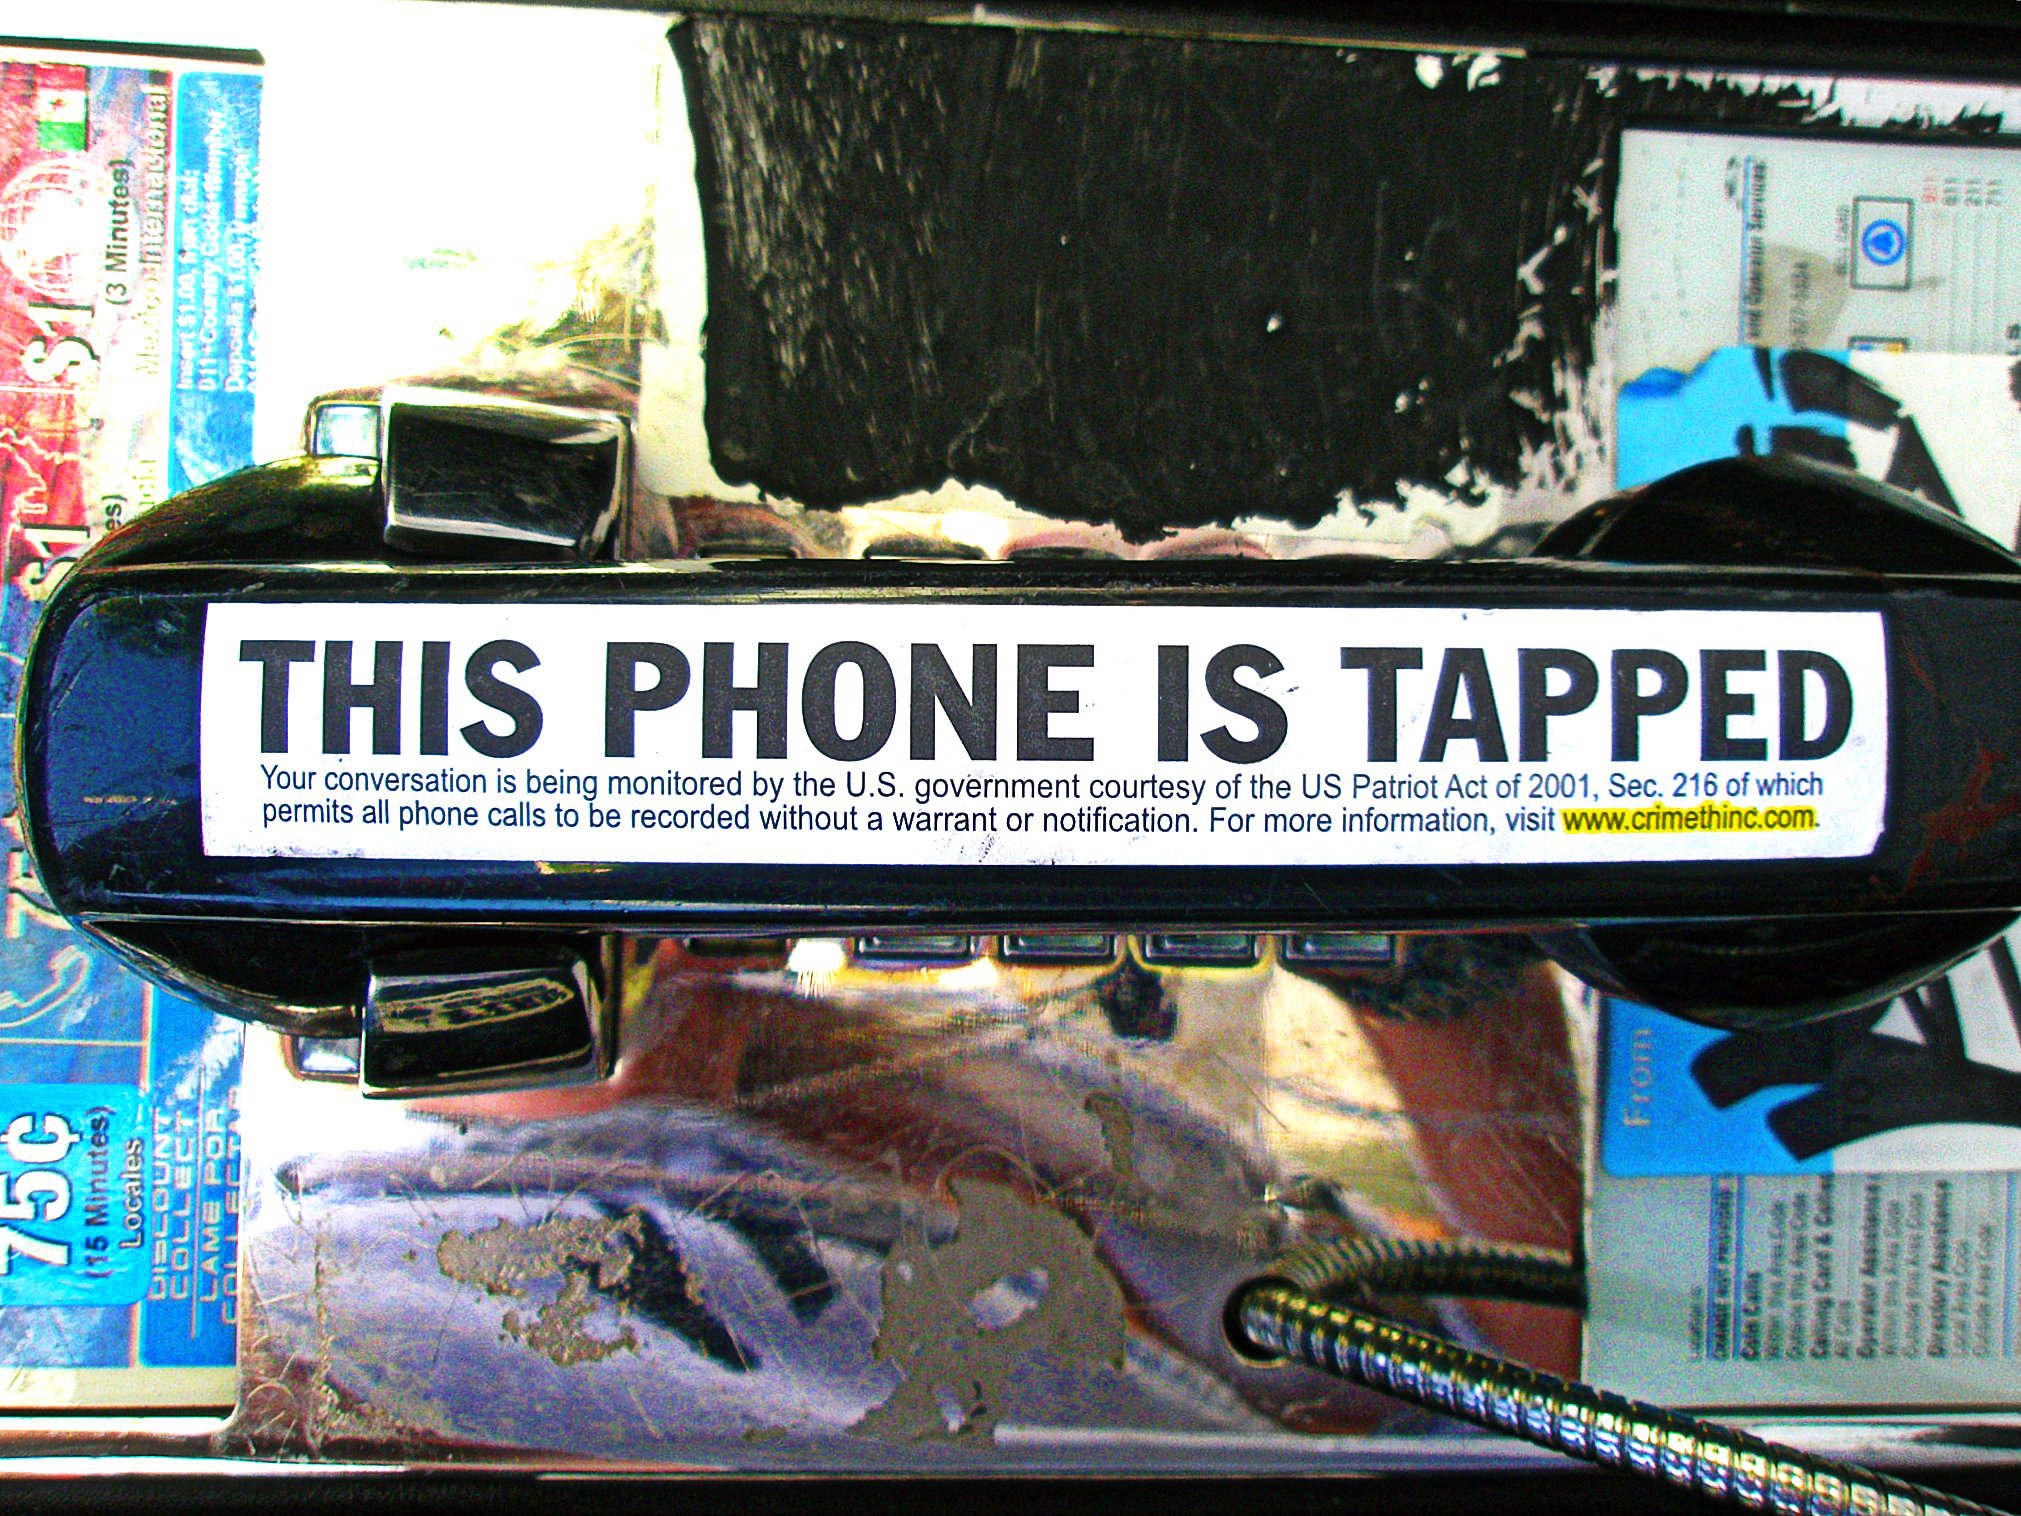 This phone is tapped